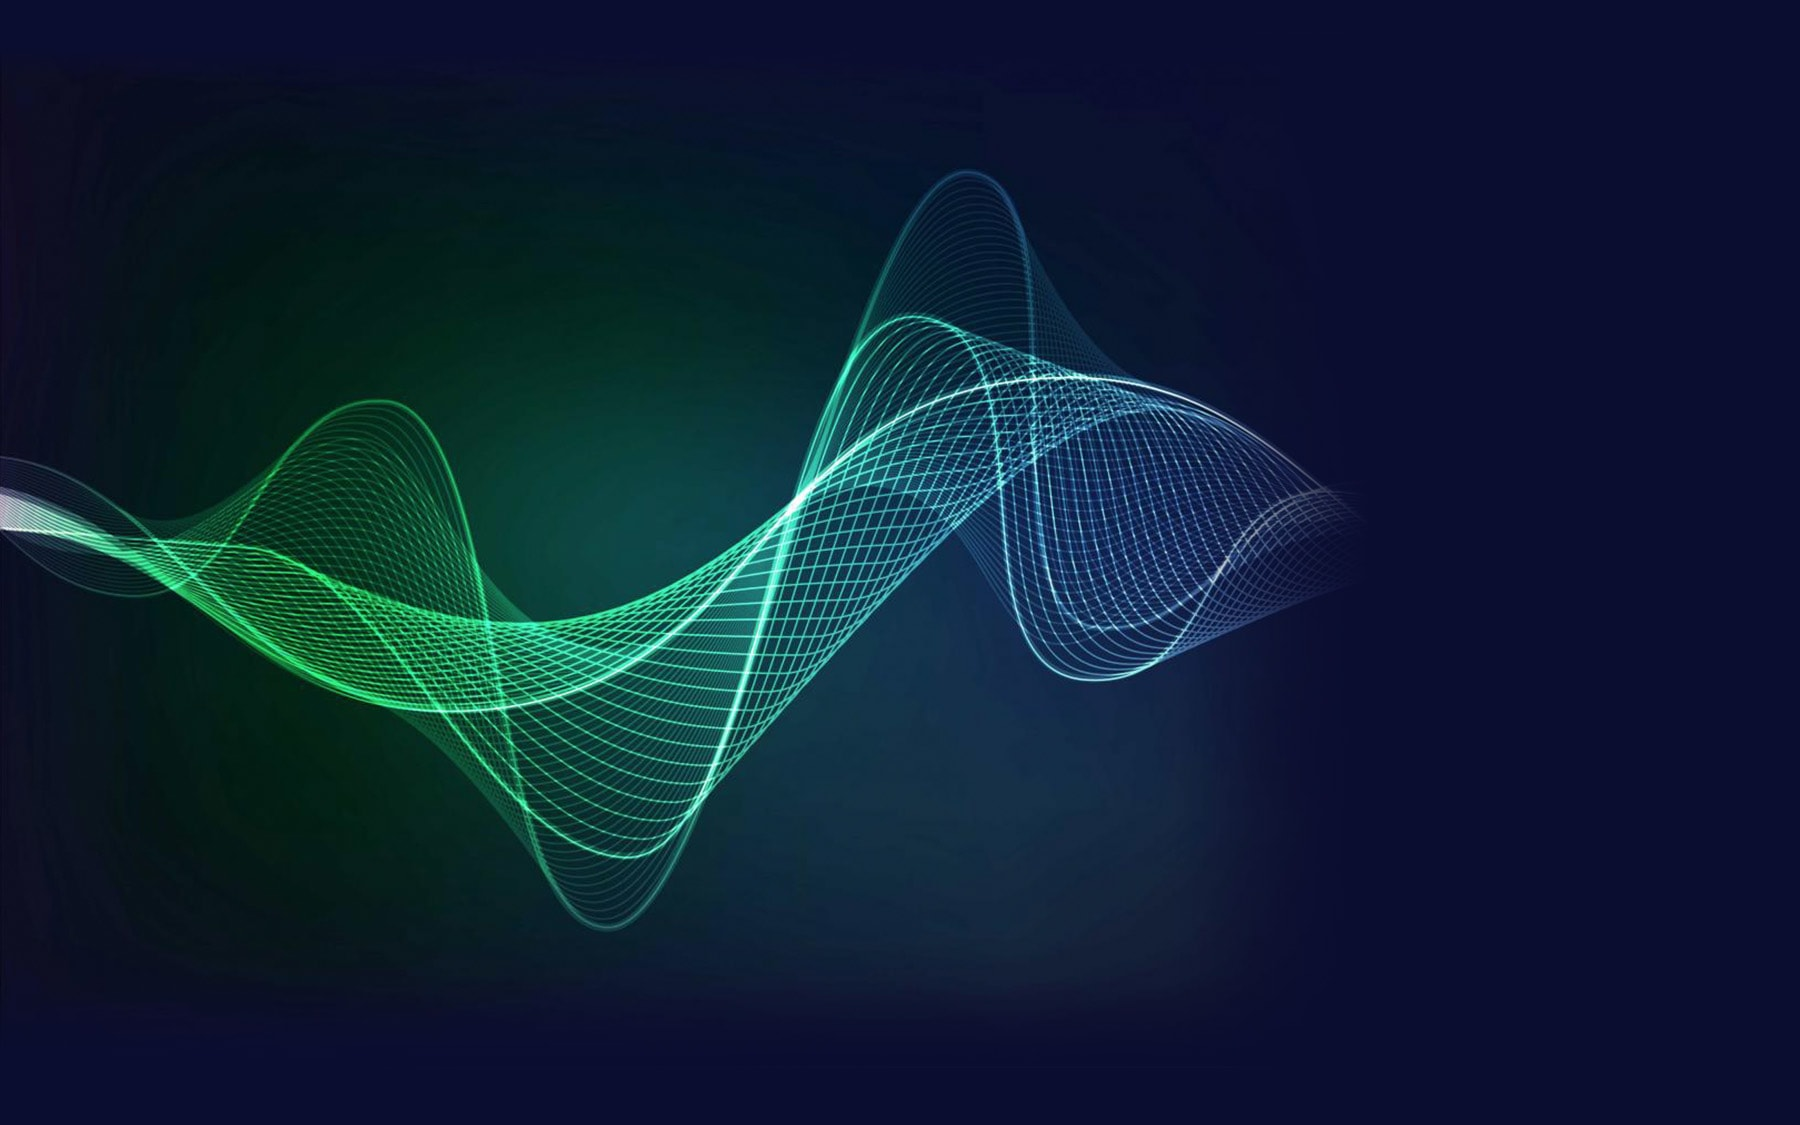 Streaming Live This Fall: Terahertz – the Next Frontier for Communications and Electronics